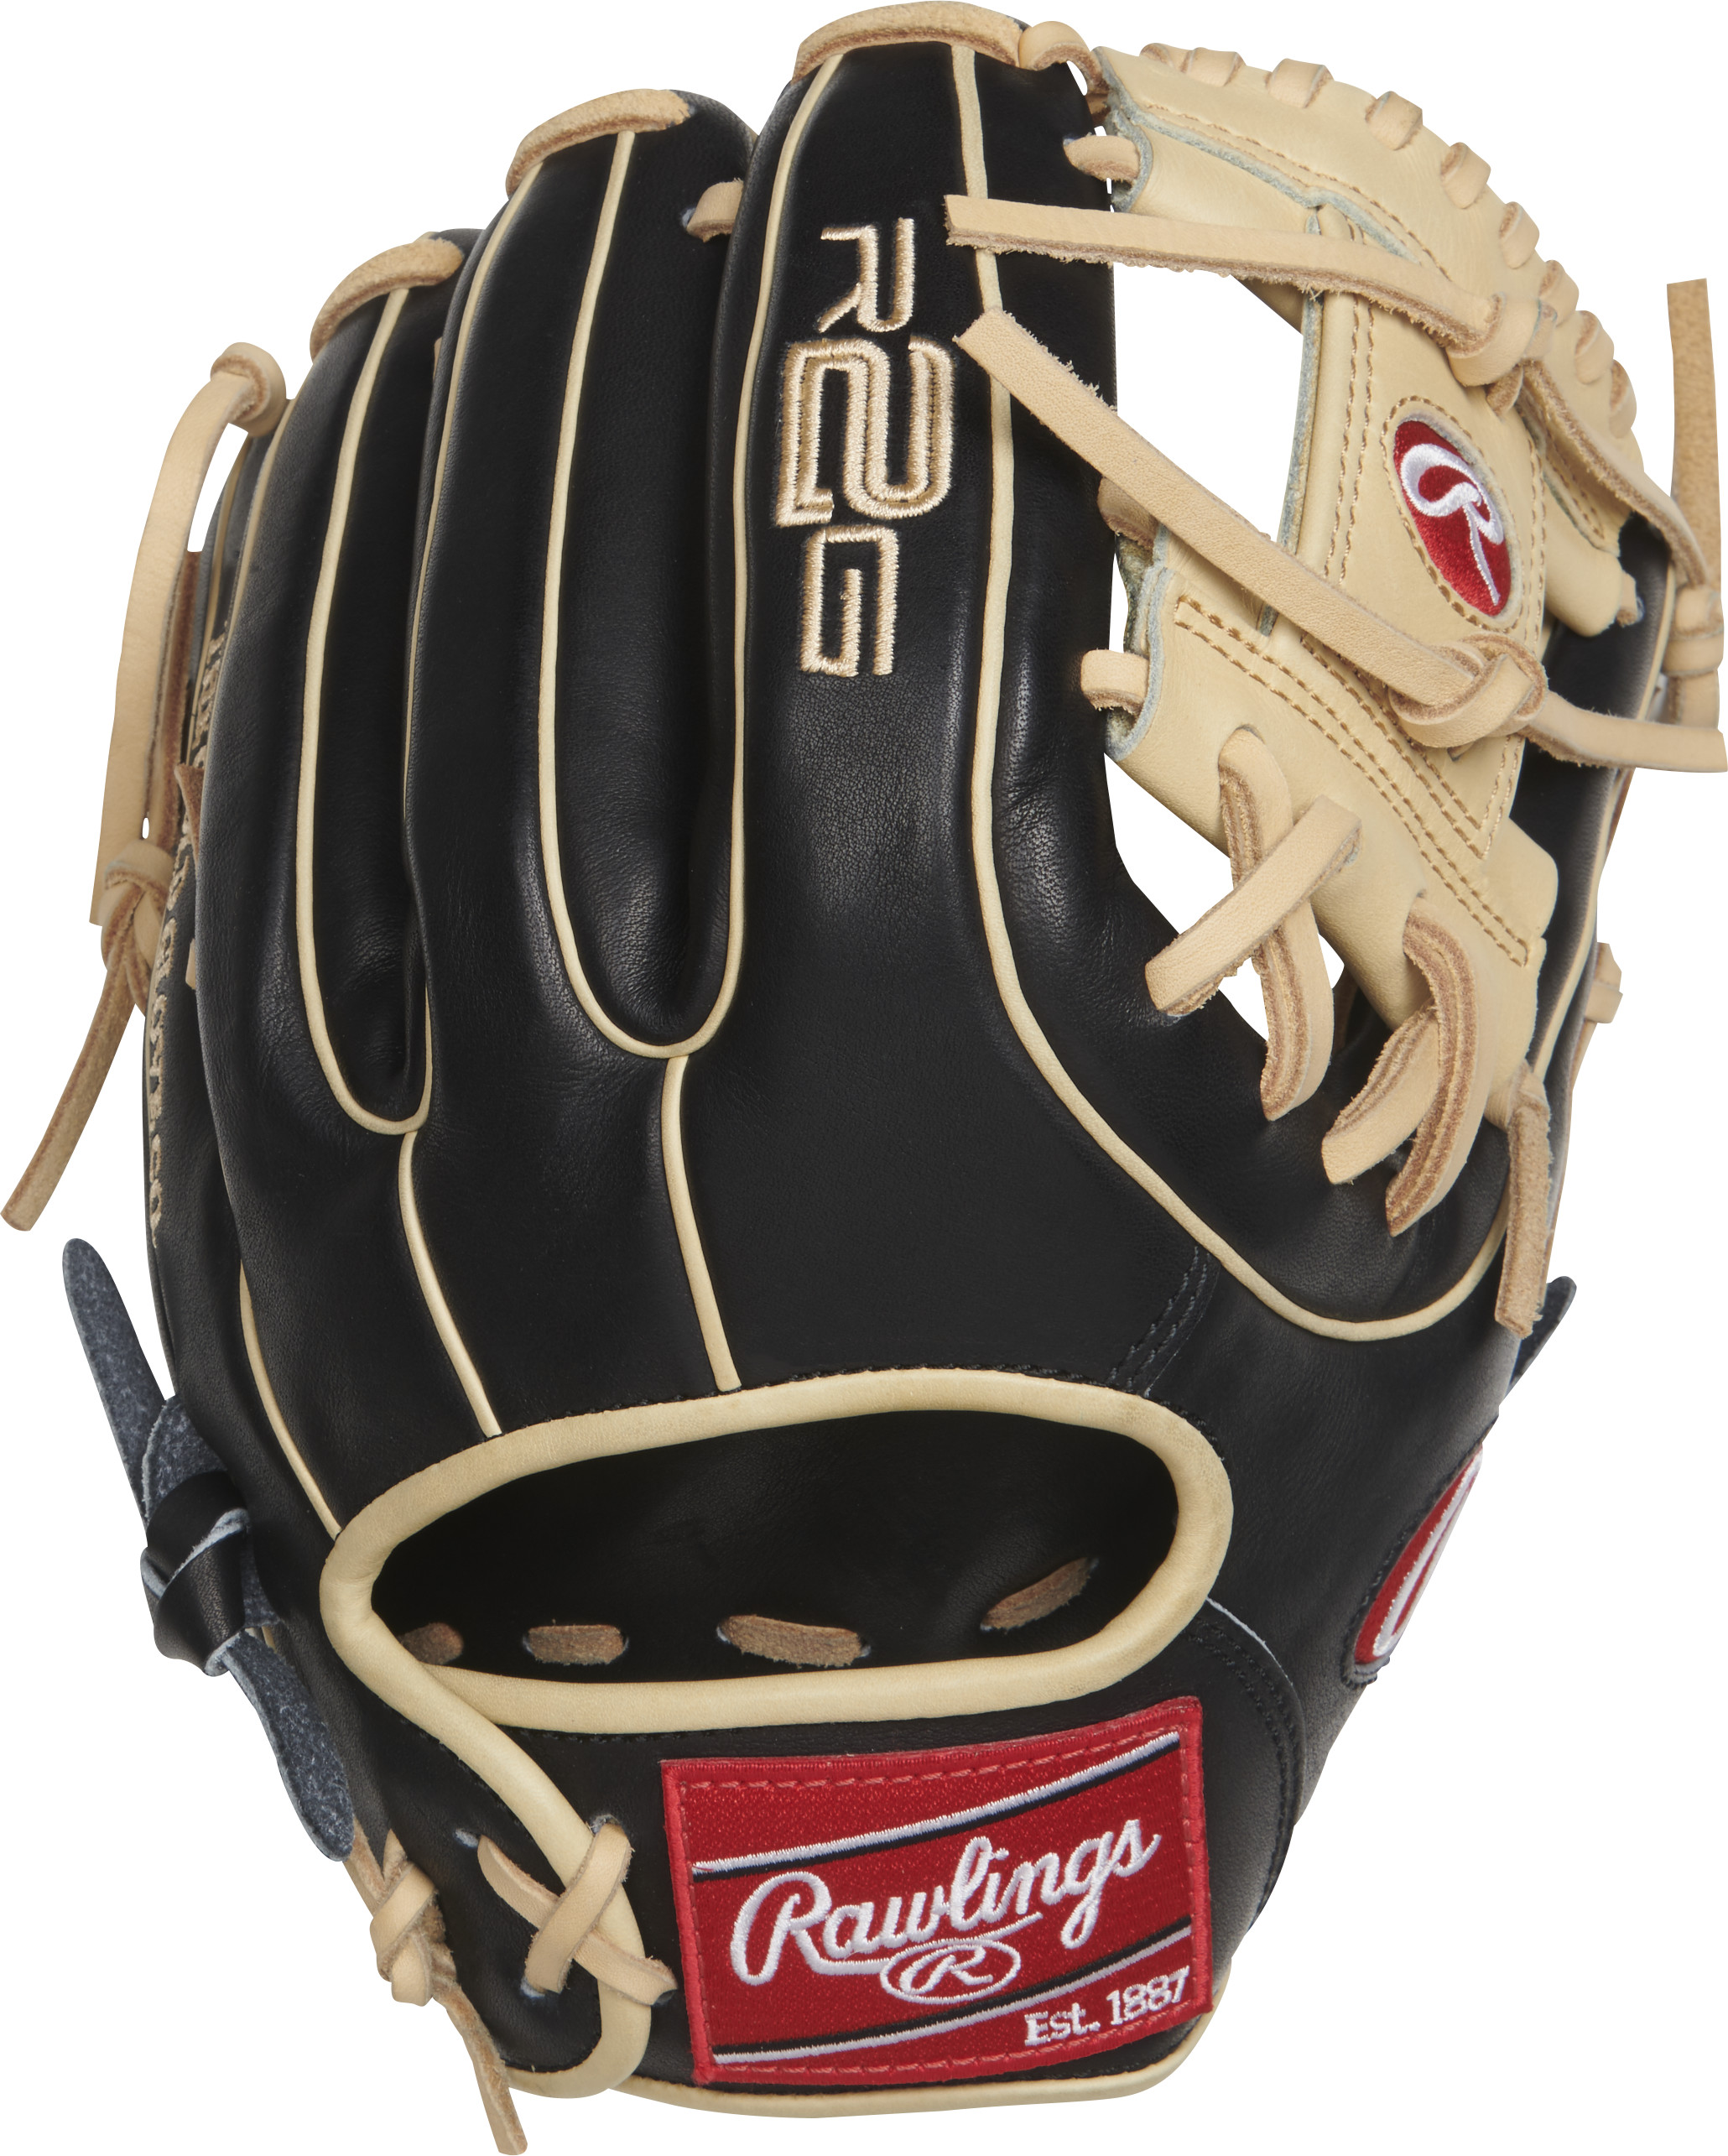 http://www.bestbatdeals.com/images/gloves/rawlings/PROR314-2BC-2.jpg